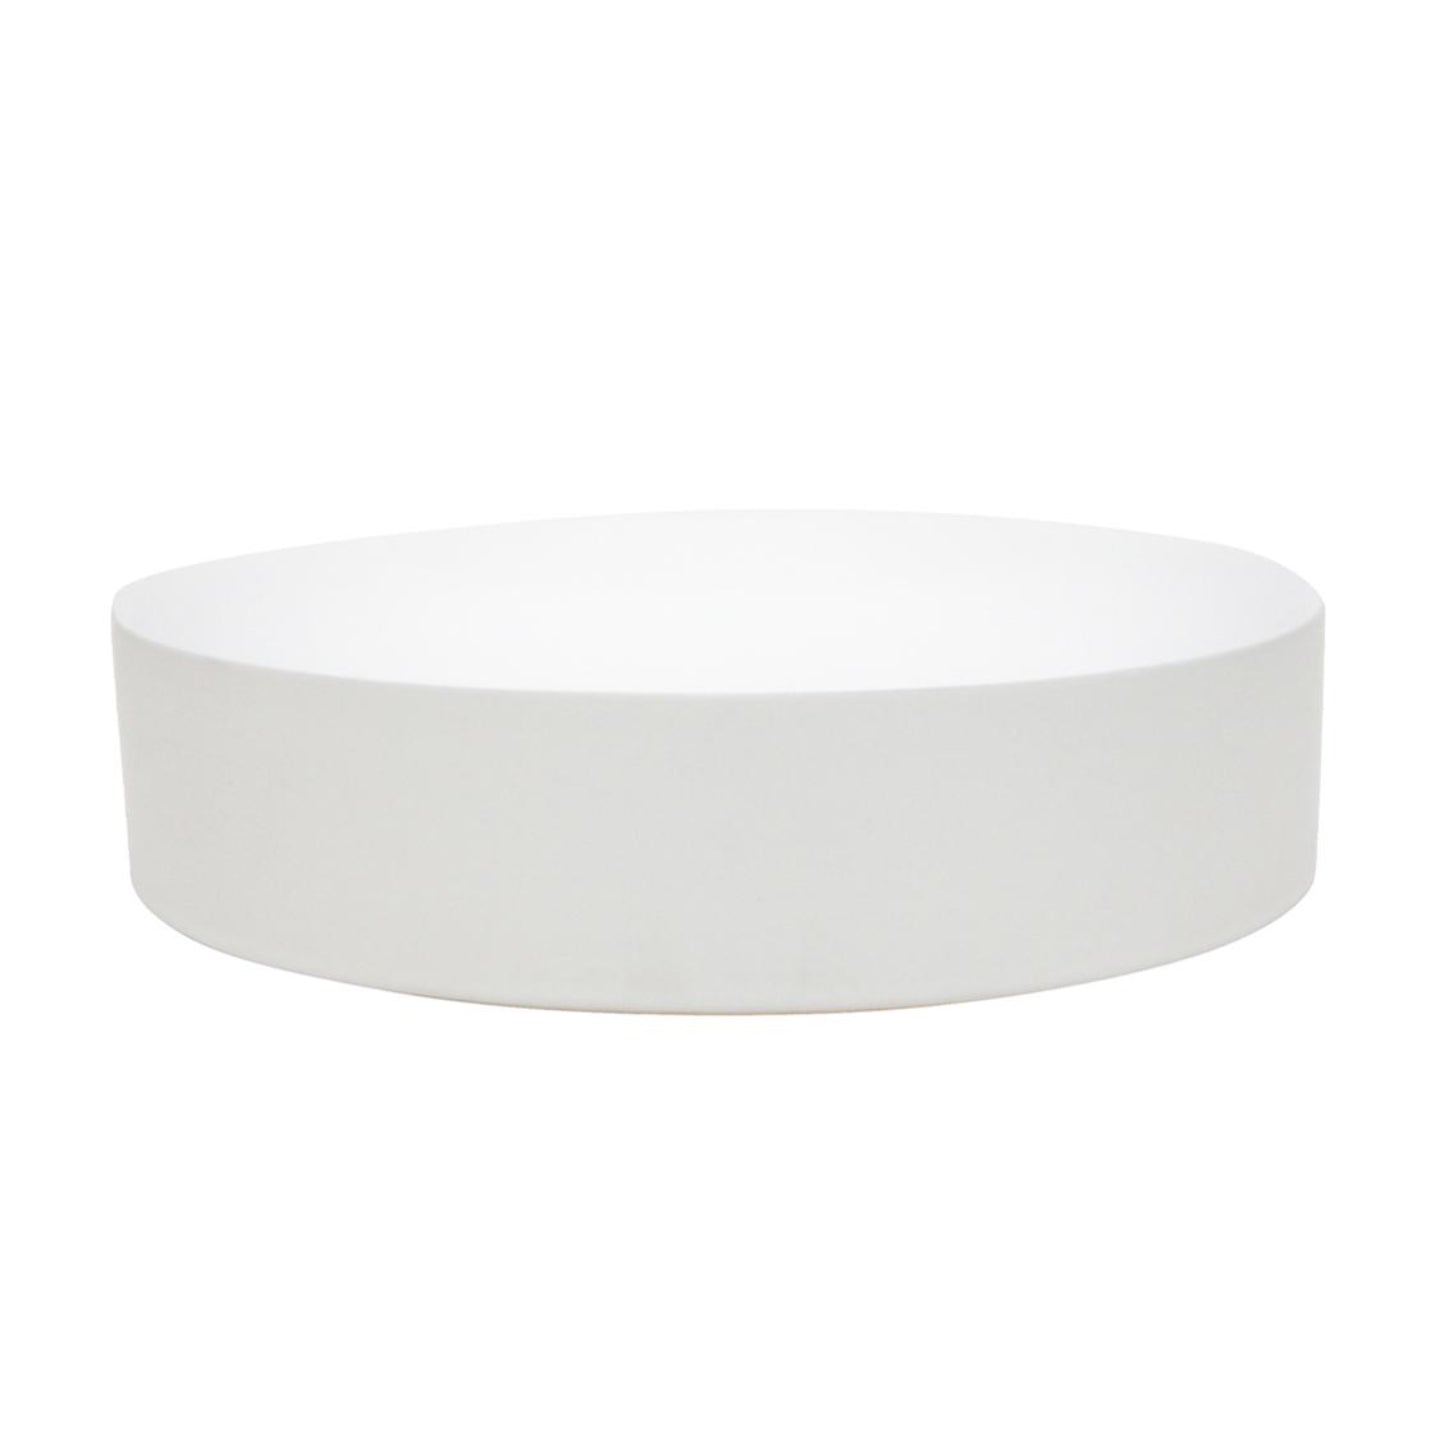 Dip Ceramic Fruit Bowl | White